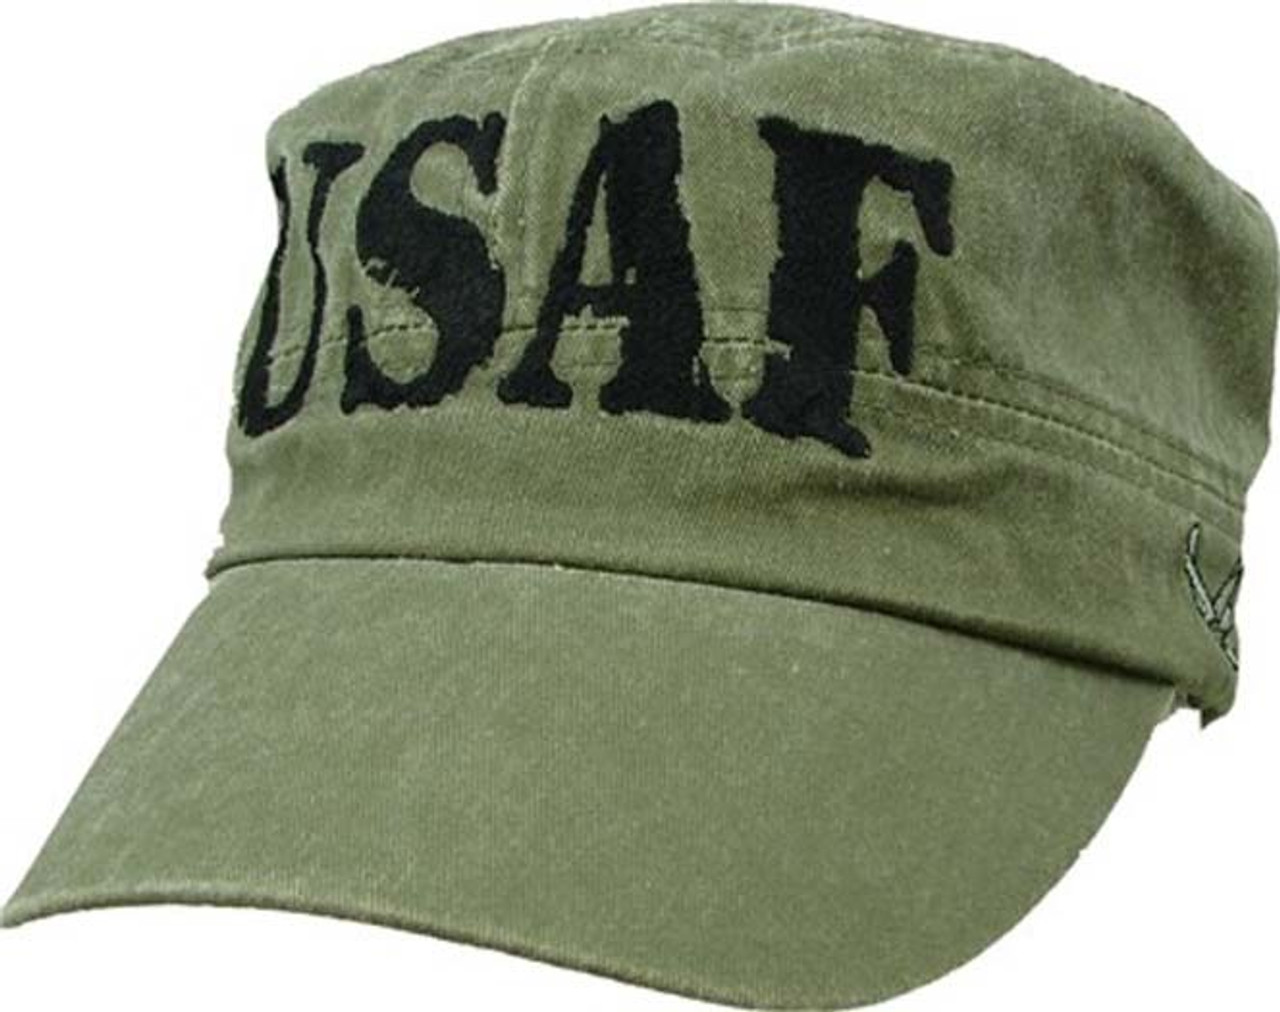 193f779dd49 U.S.A.F. US AIR FORCE Cadet Style Military Hat Baseball Cap Officially  Licensed